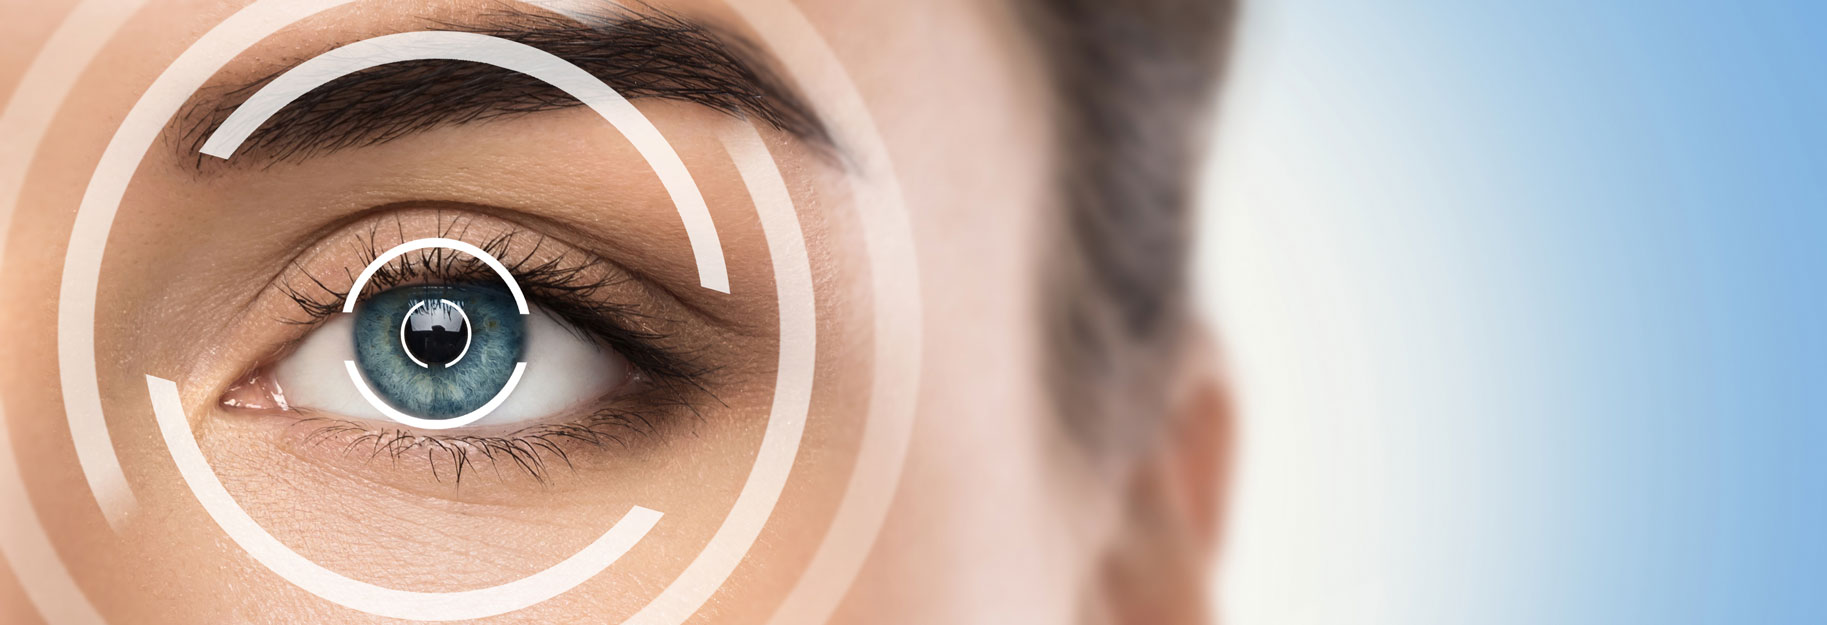 LASIK Eye Surgery Kansas City